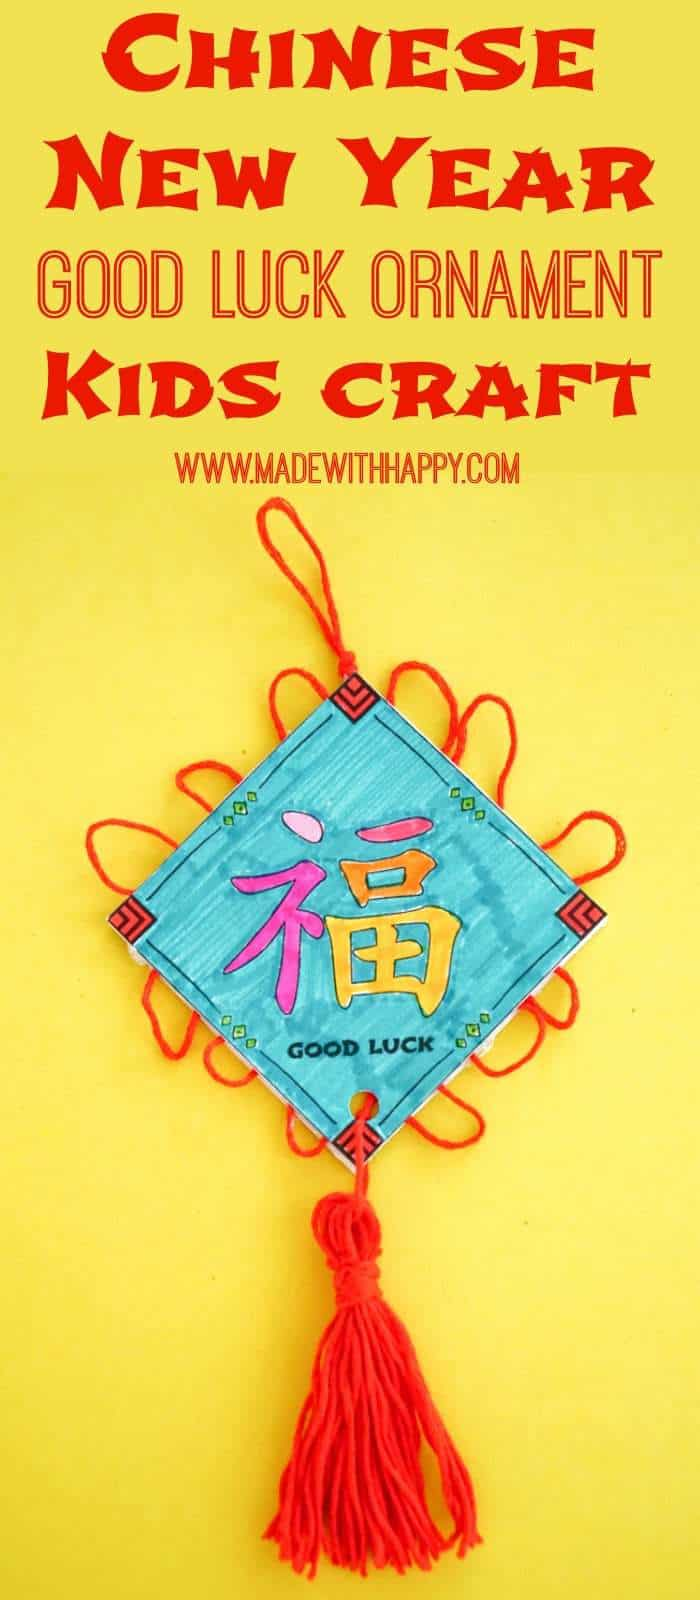 Good Luck Ornaments. Chinese New Year Kids Craft. Free Printable Chinese New Year Craft. Chinese New Year Good Luck Ornament. How to make a good luck ornament. Celebrate the Chinese New Year with these simple crafts.